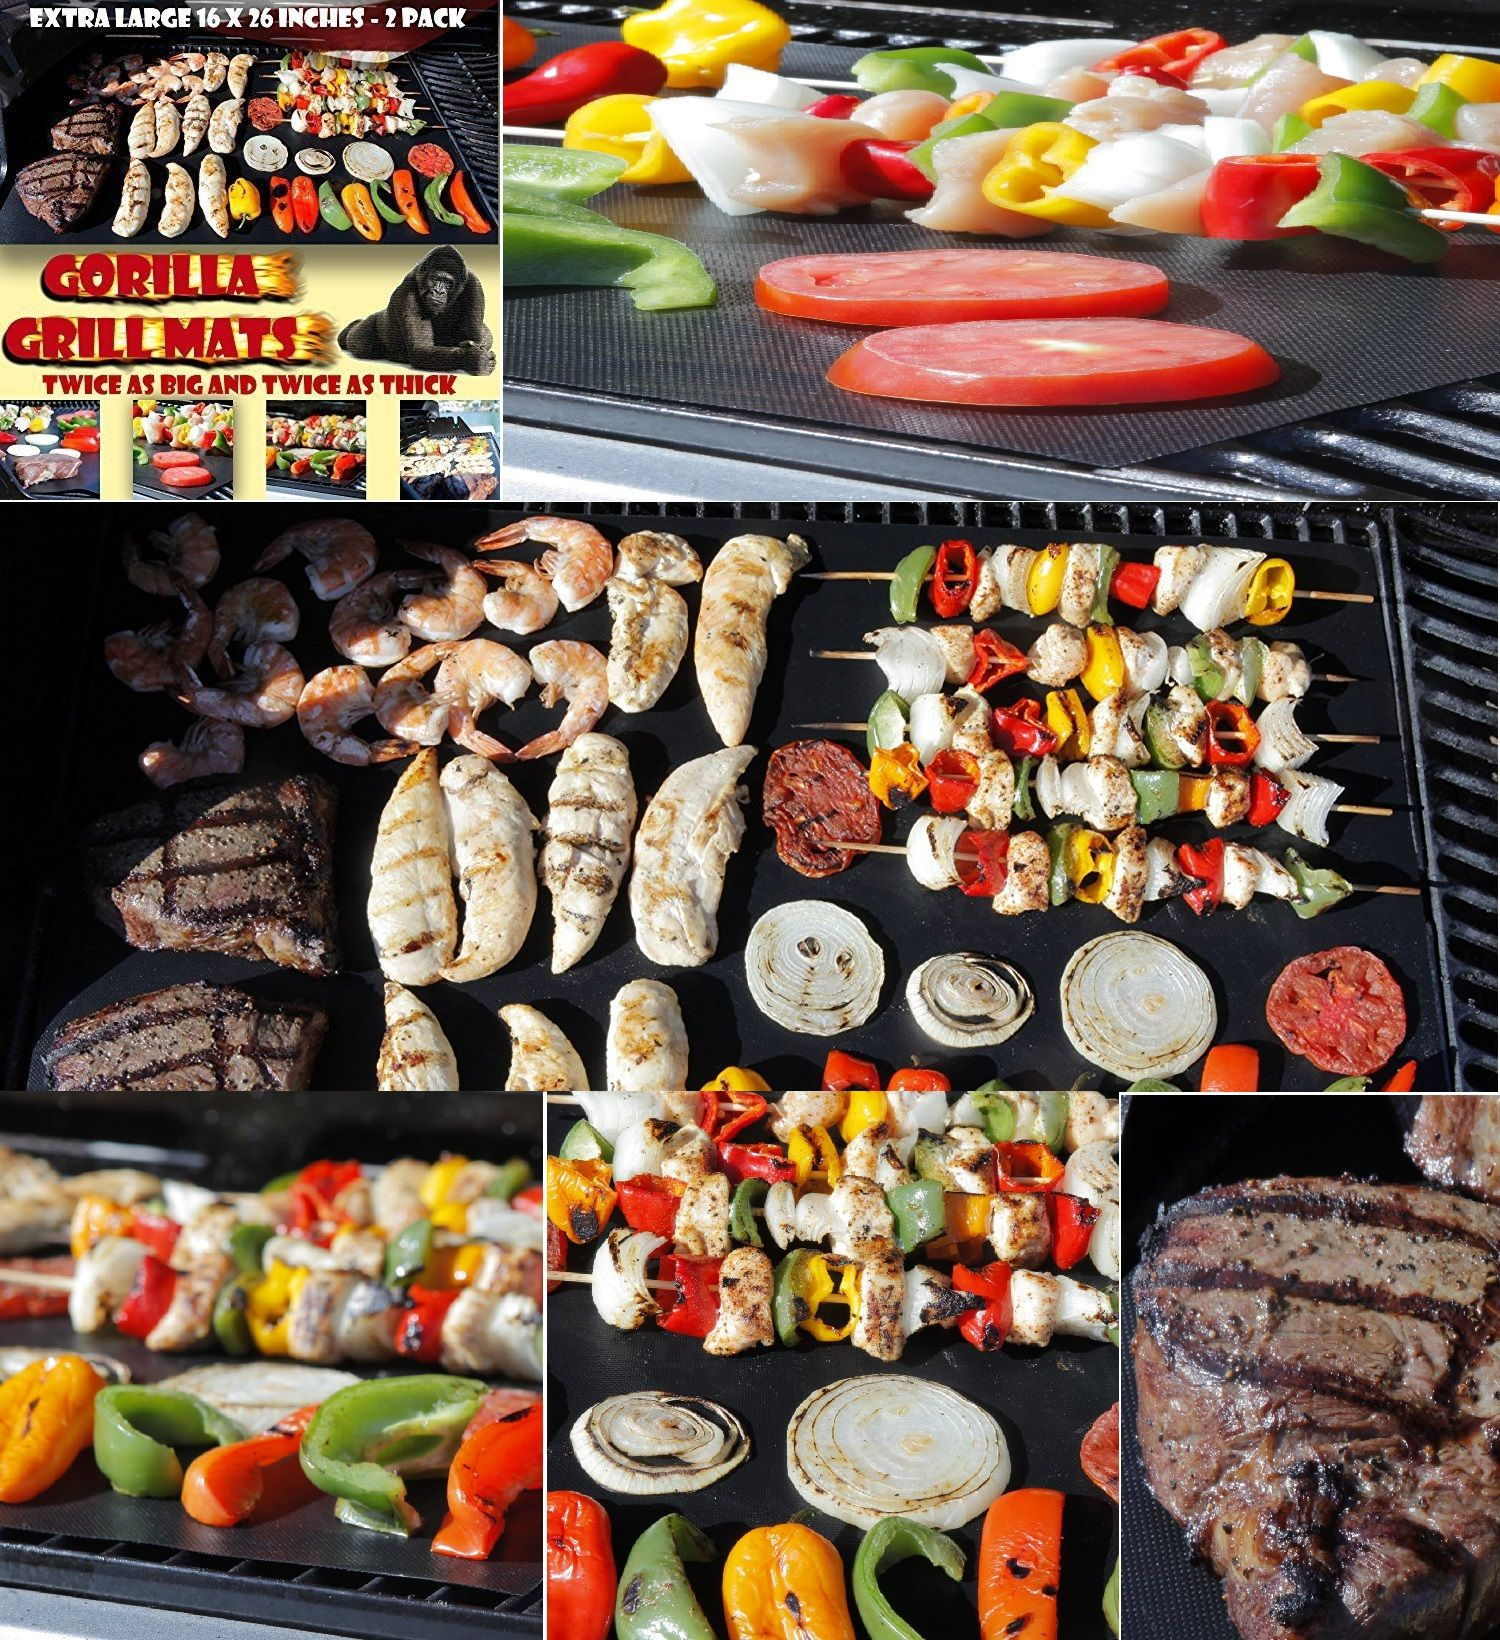 double sized bbq grill mat bbq grill grilling and food